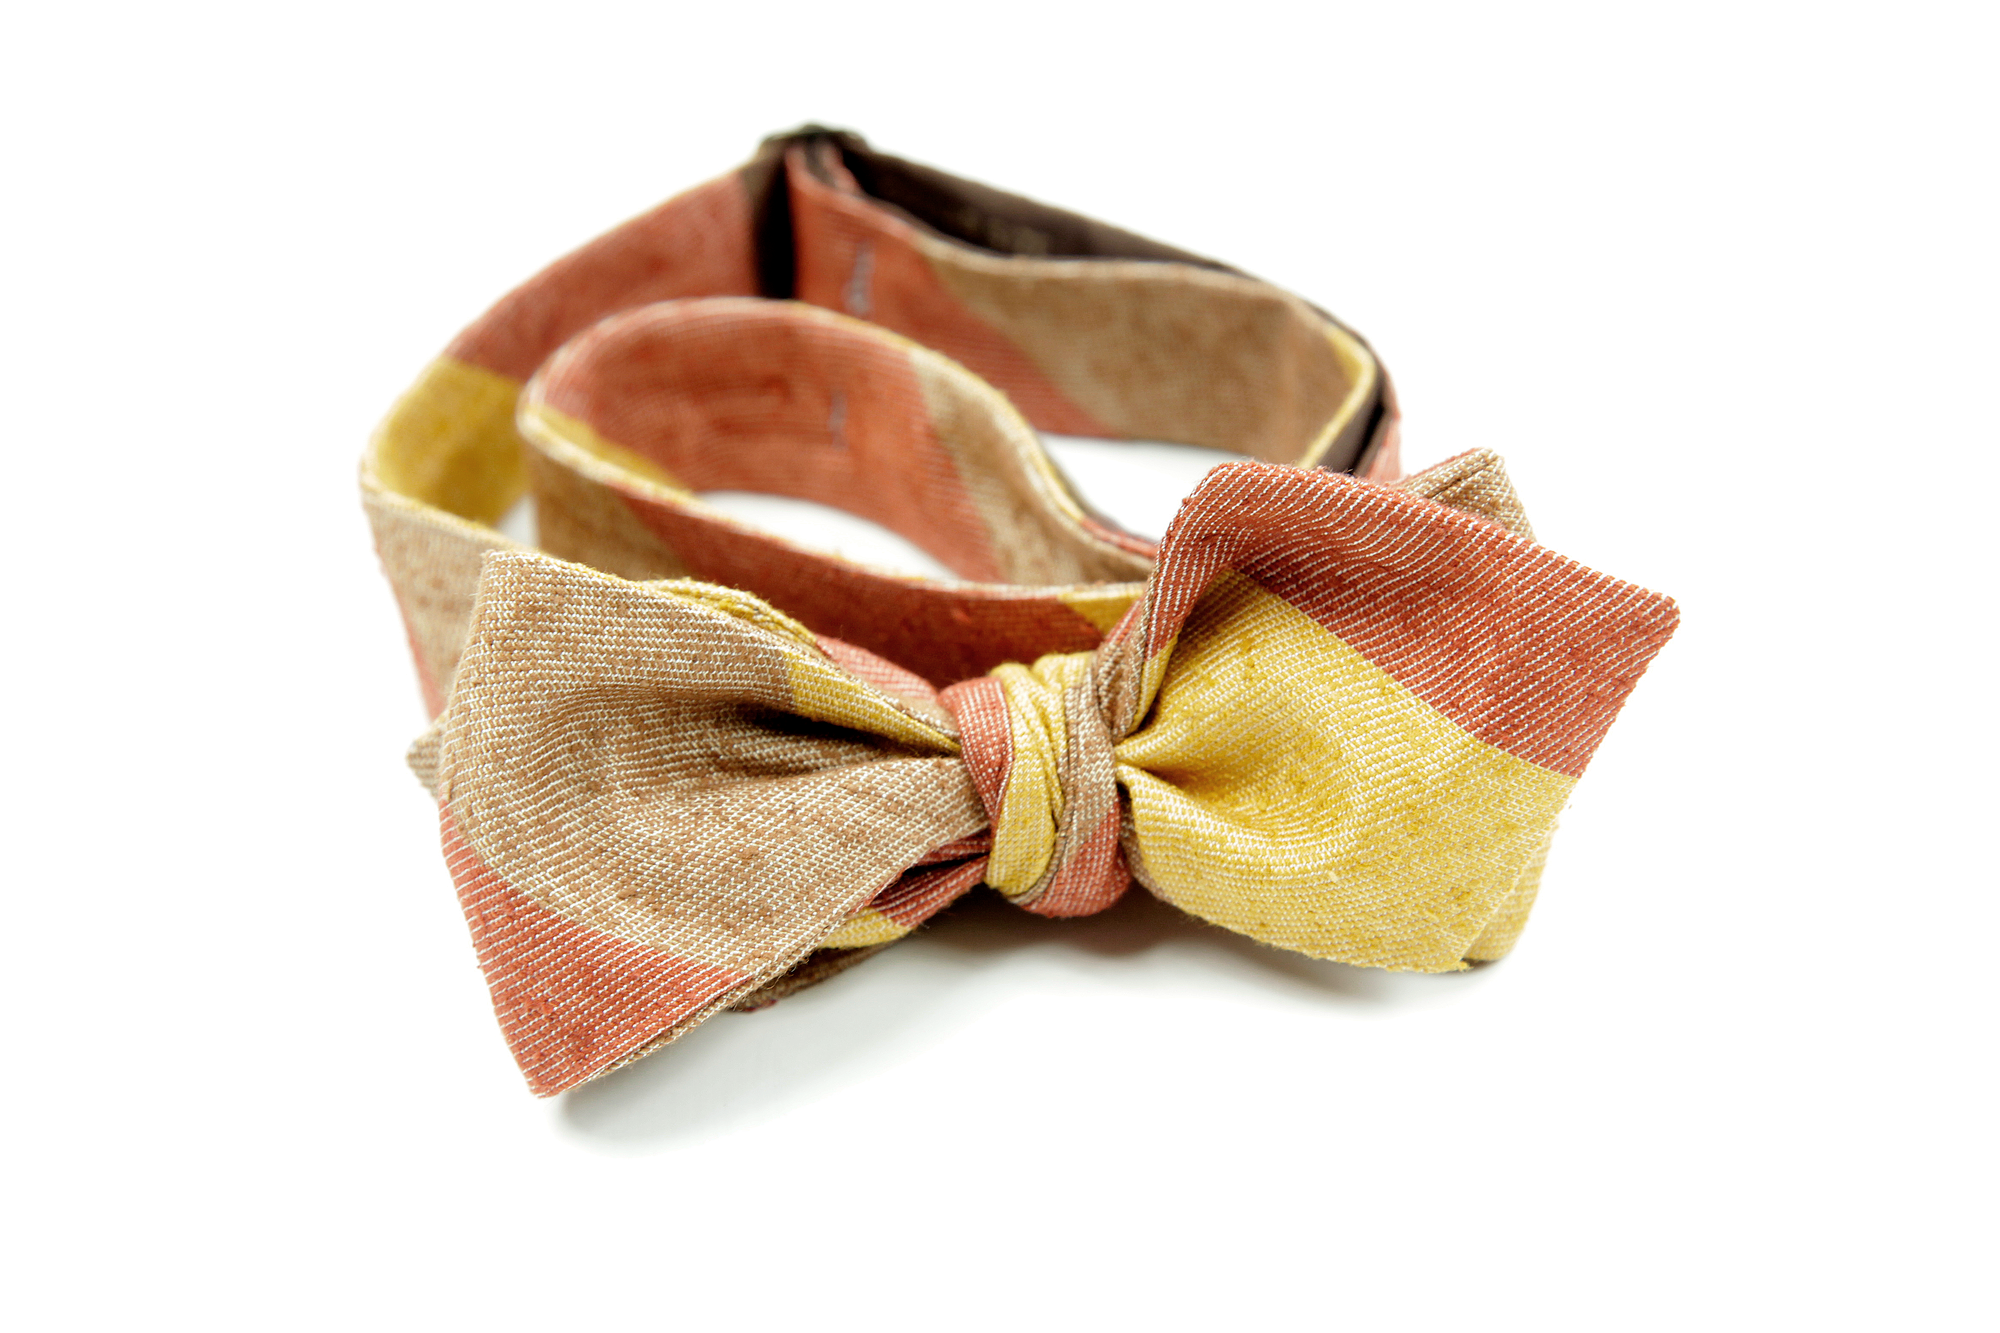 The Jasper Bow Tie